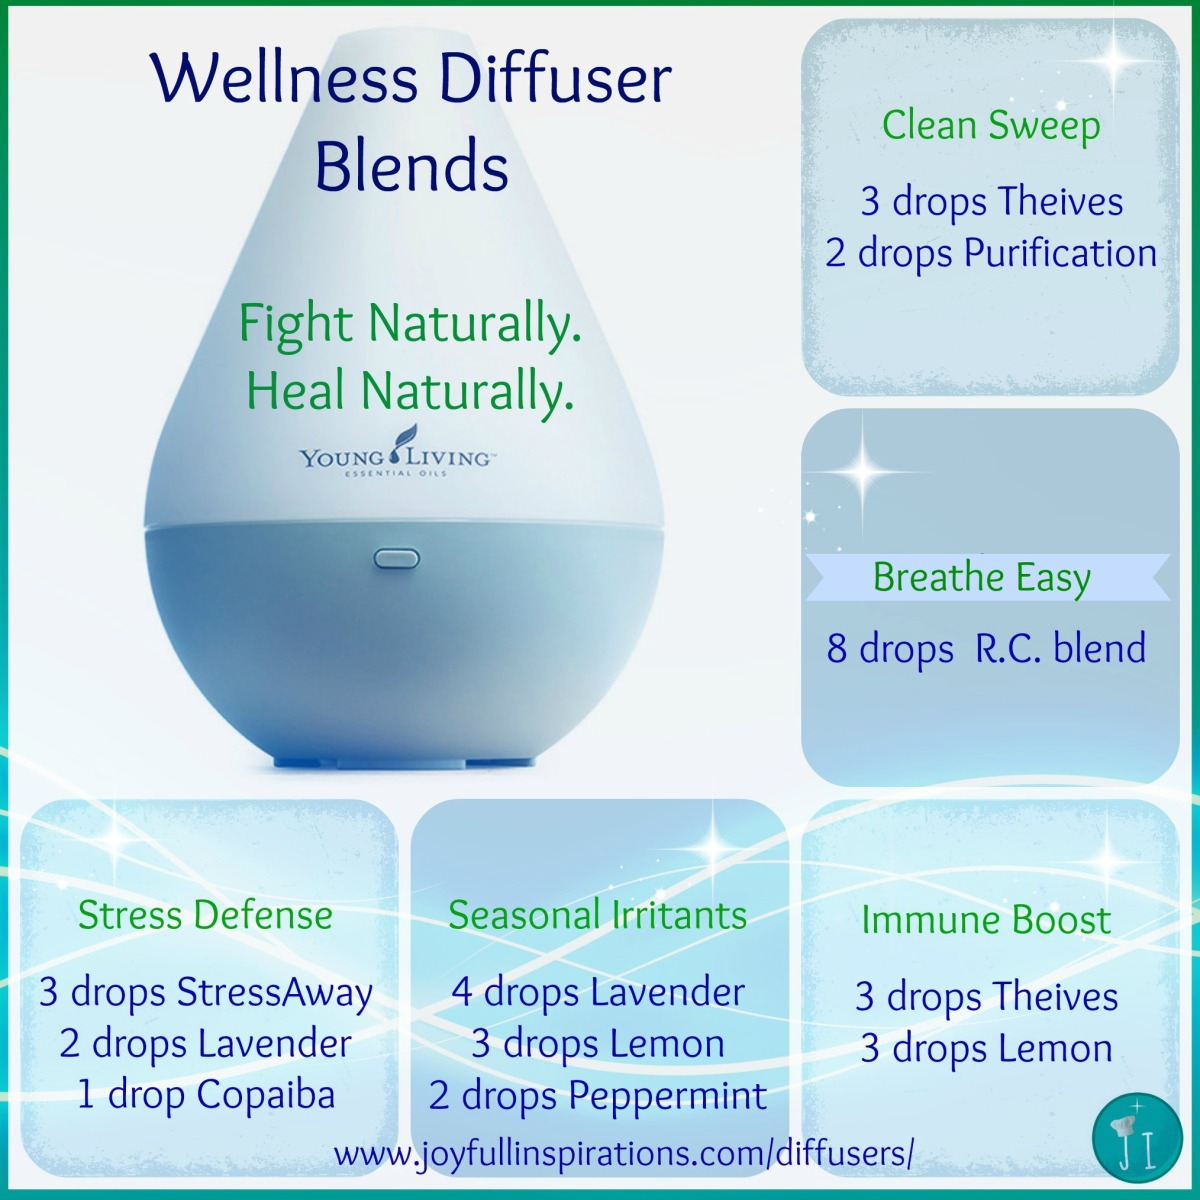 Wellness Diffuser Blends